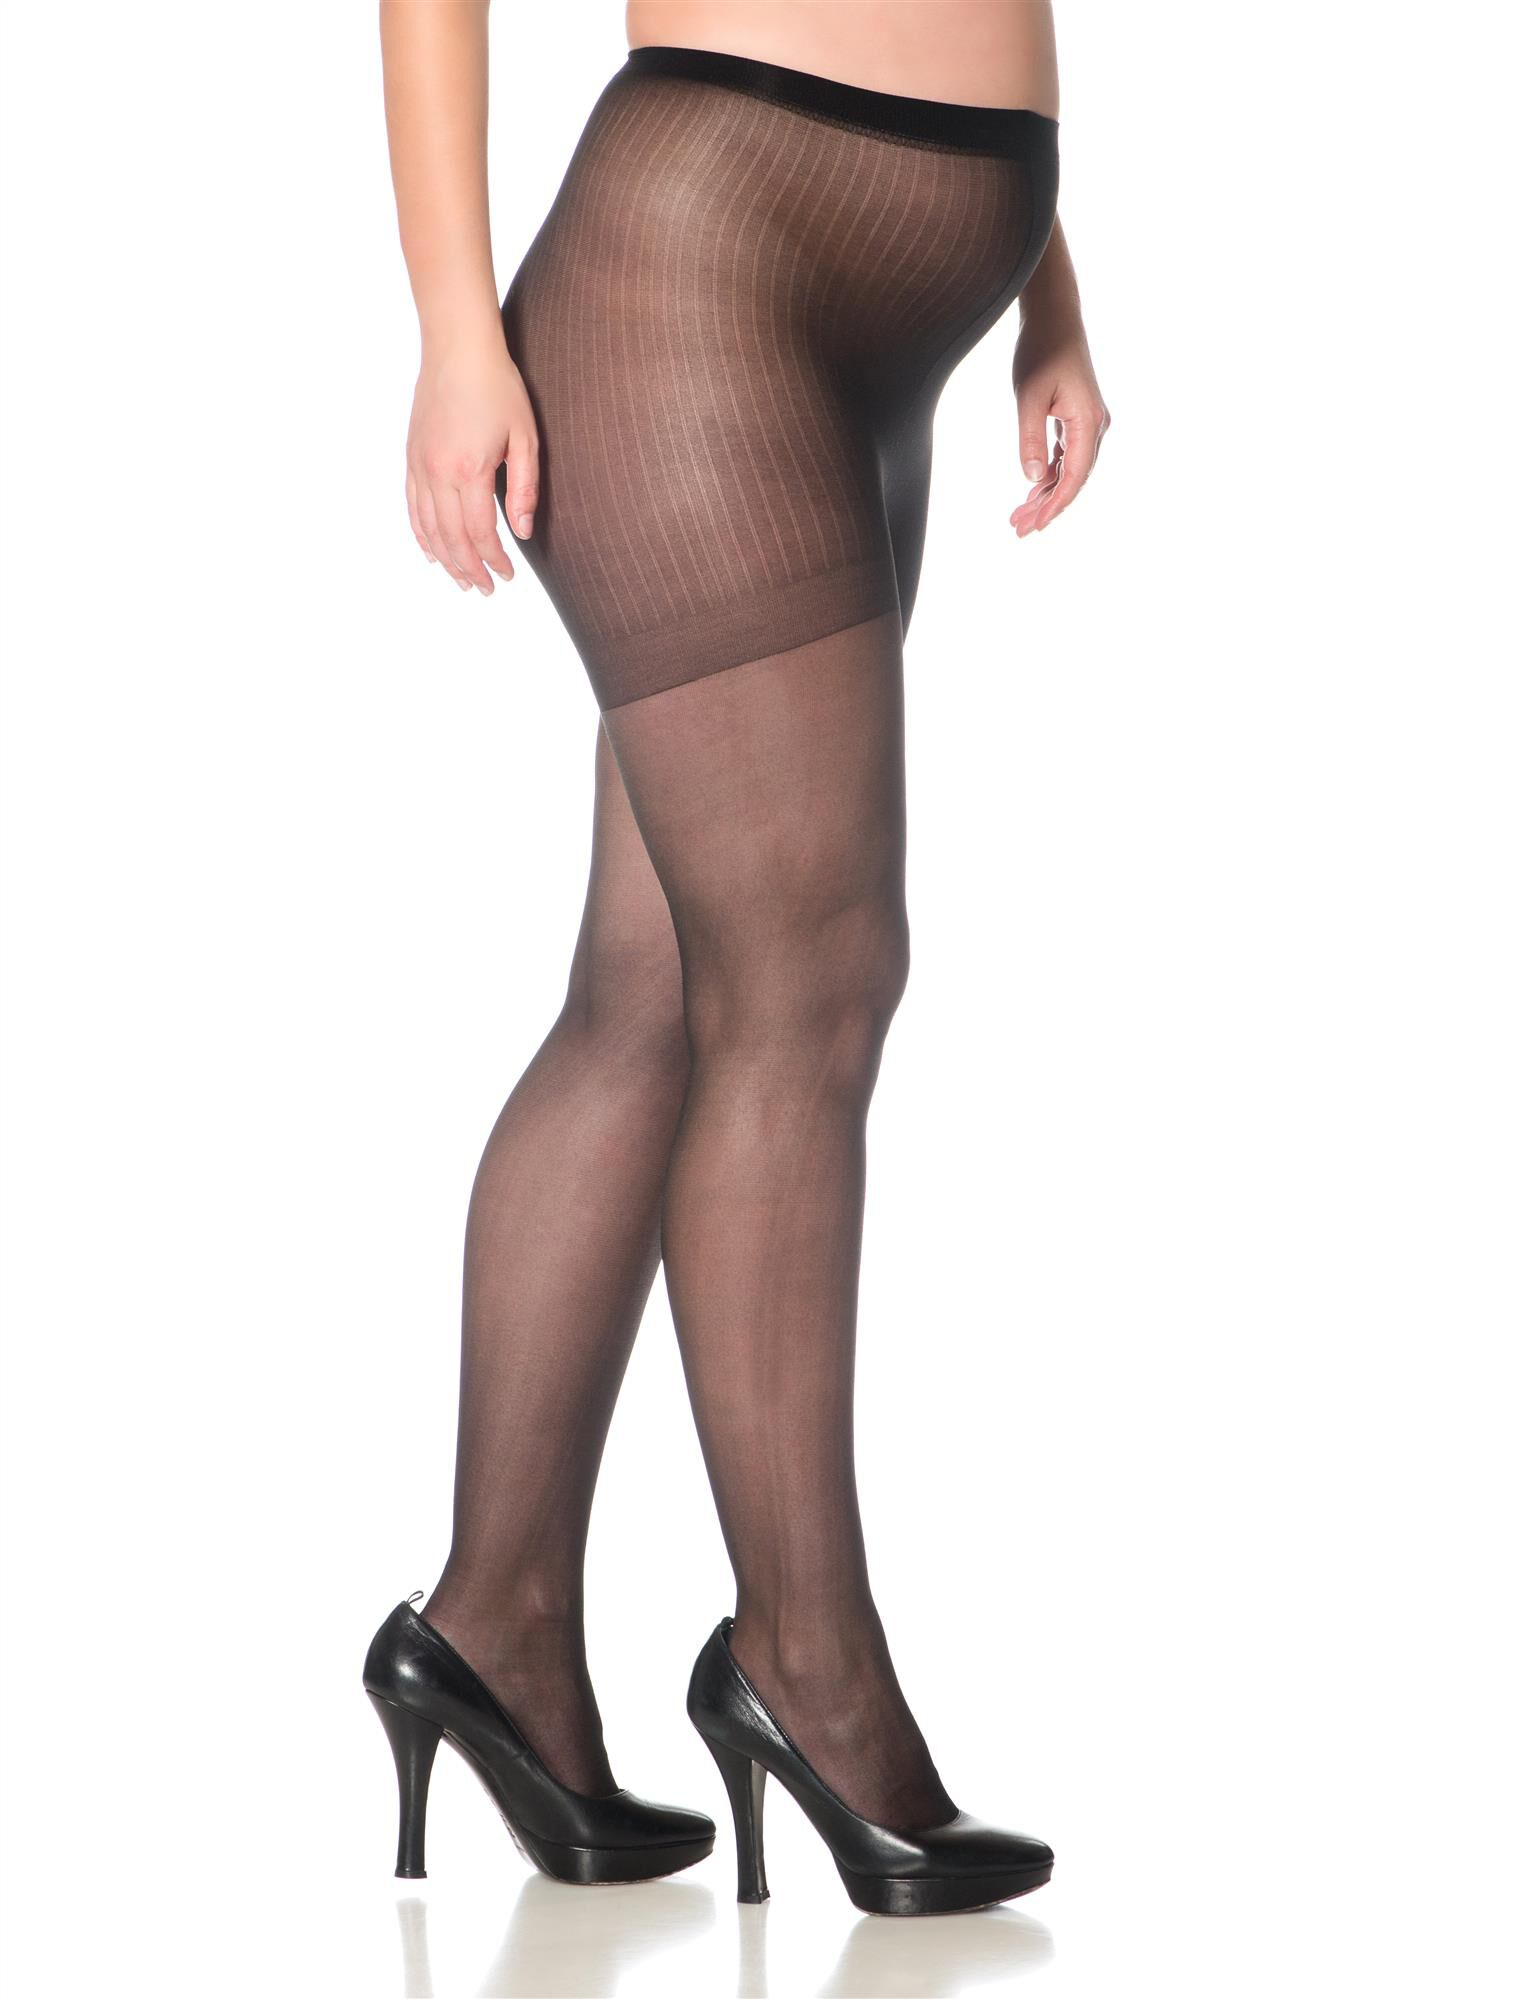 Sheer Maternity Pantyhose